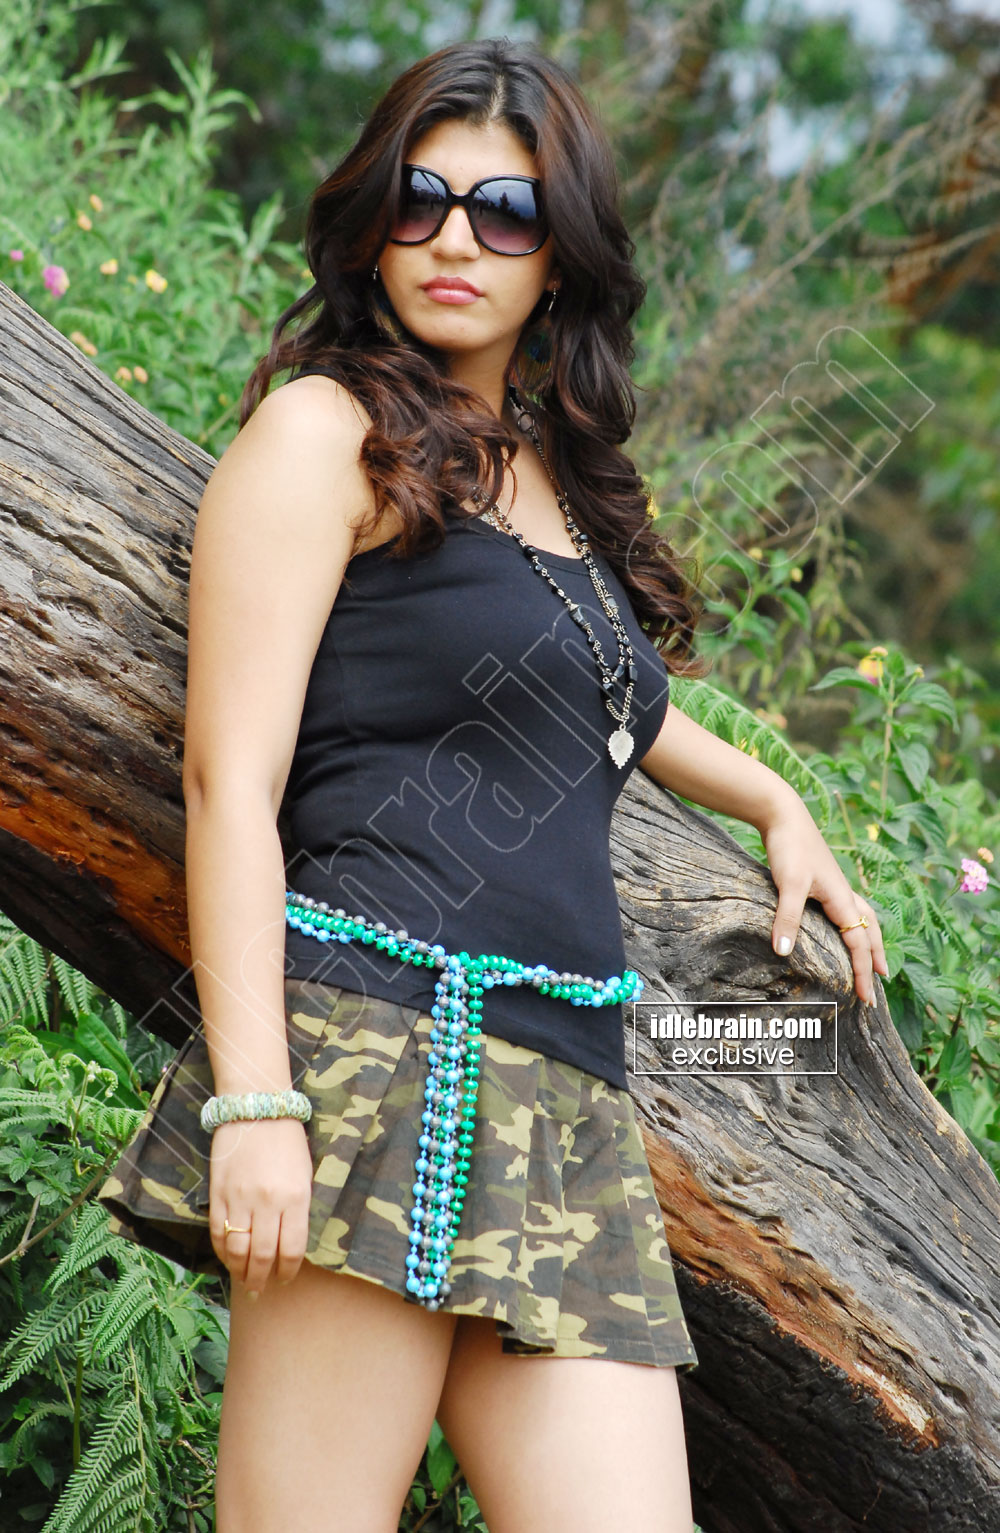 Sarah sharma in army skirt and black tank top -  Sarah Sharma HOT PICS in ARMY SHORT SKIRT!!!